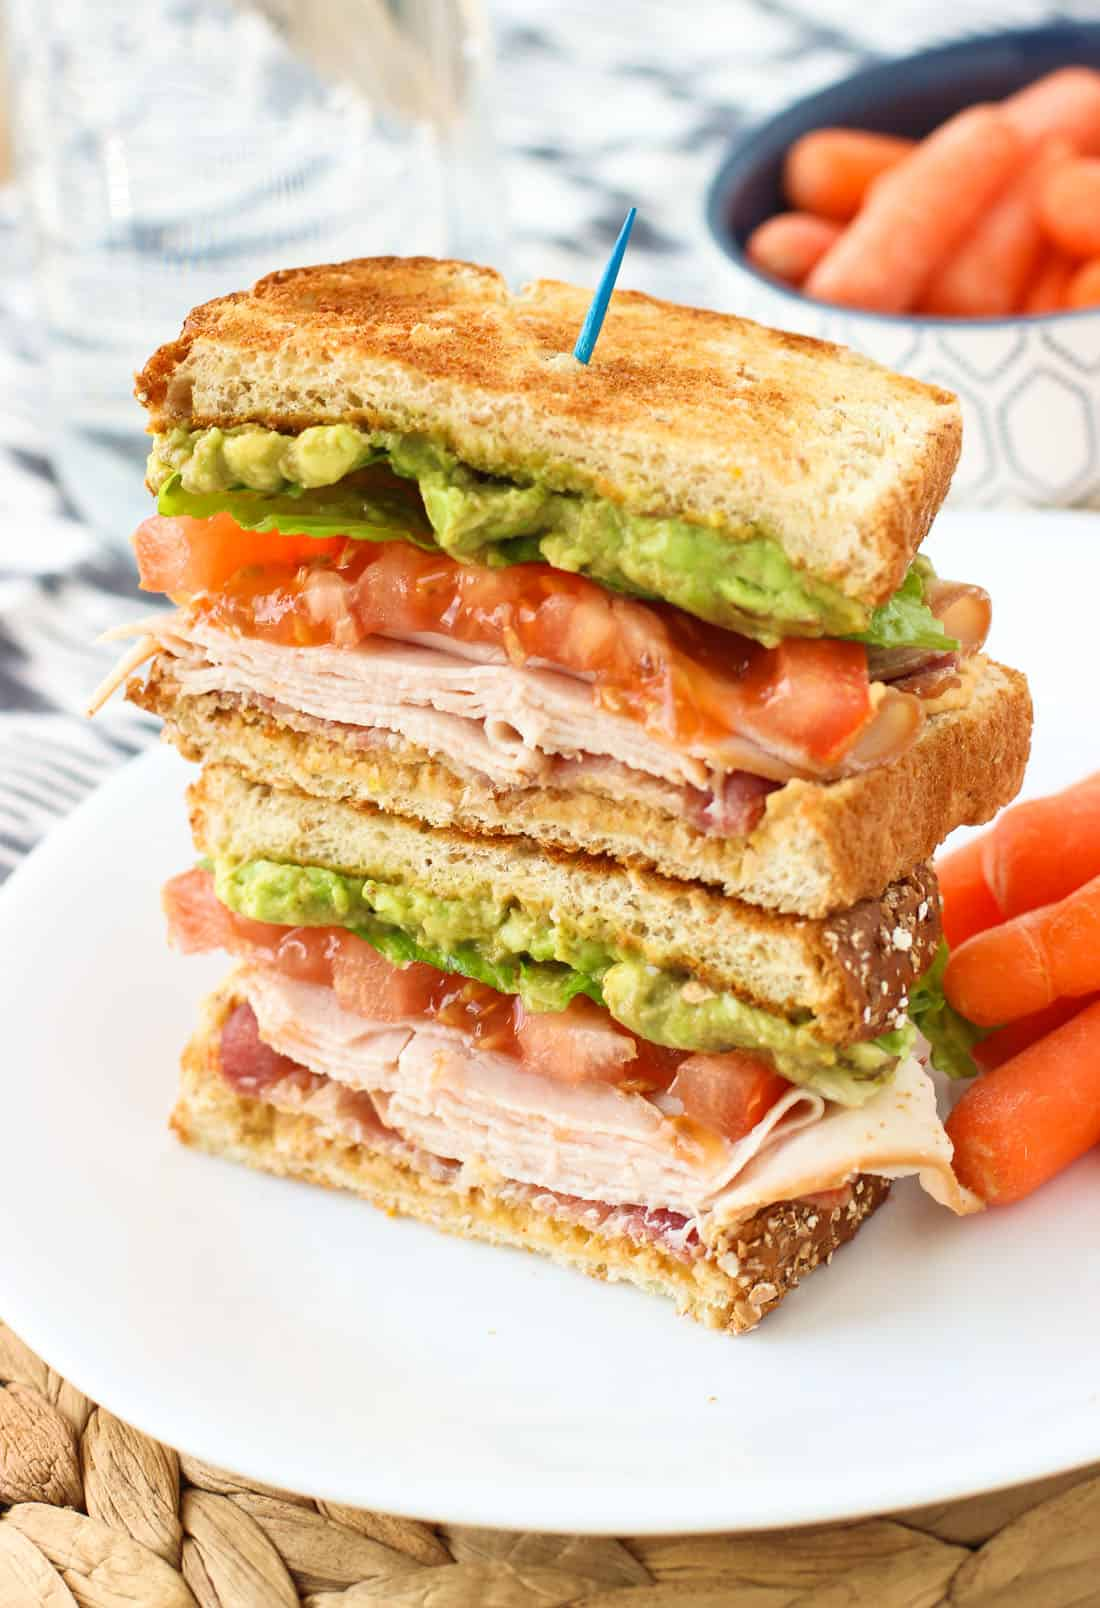 Two halves of the sandwich stacked on top of one another on a plate with baby carrots.